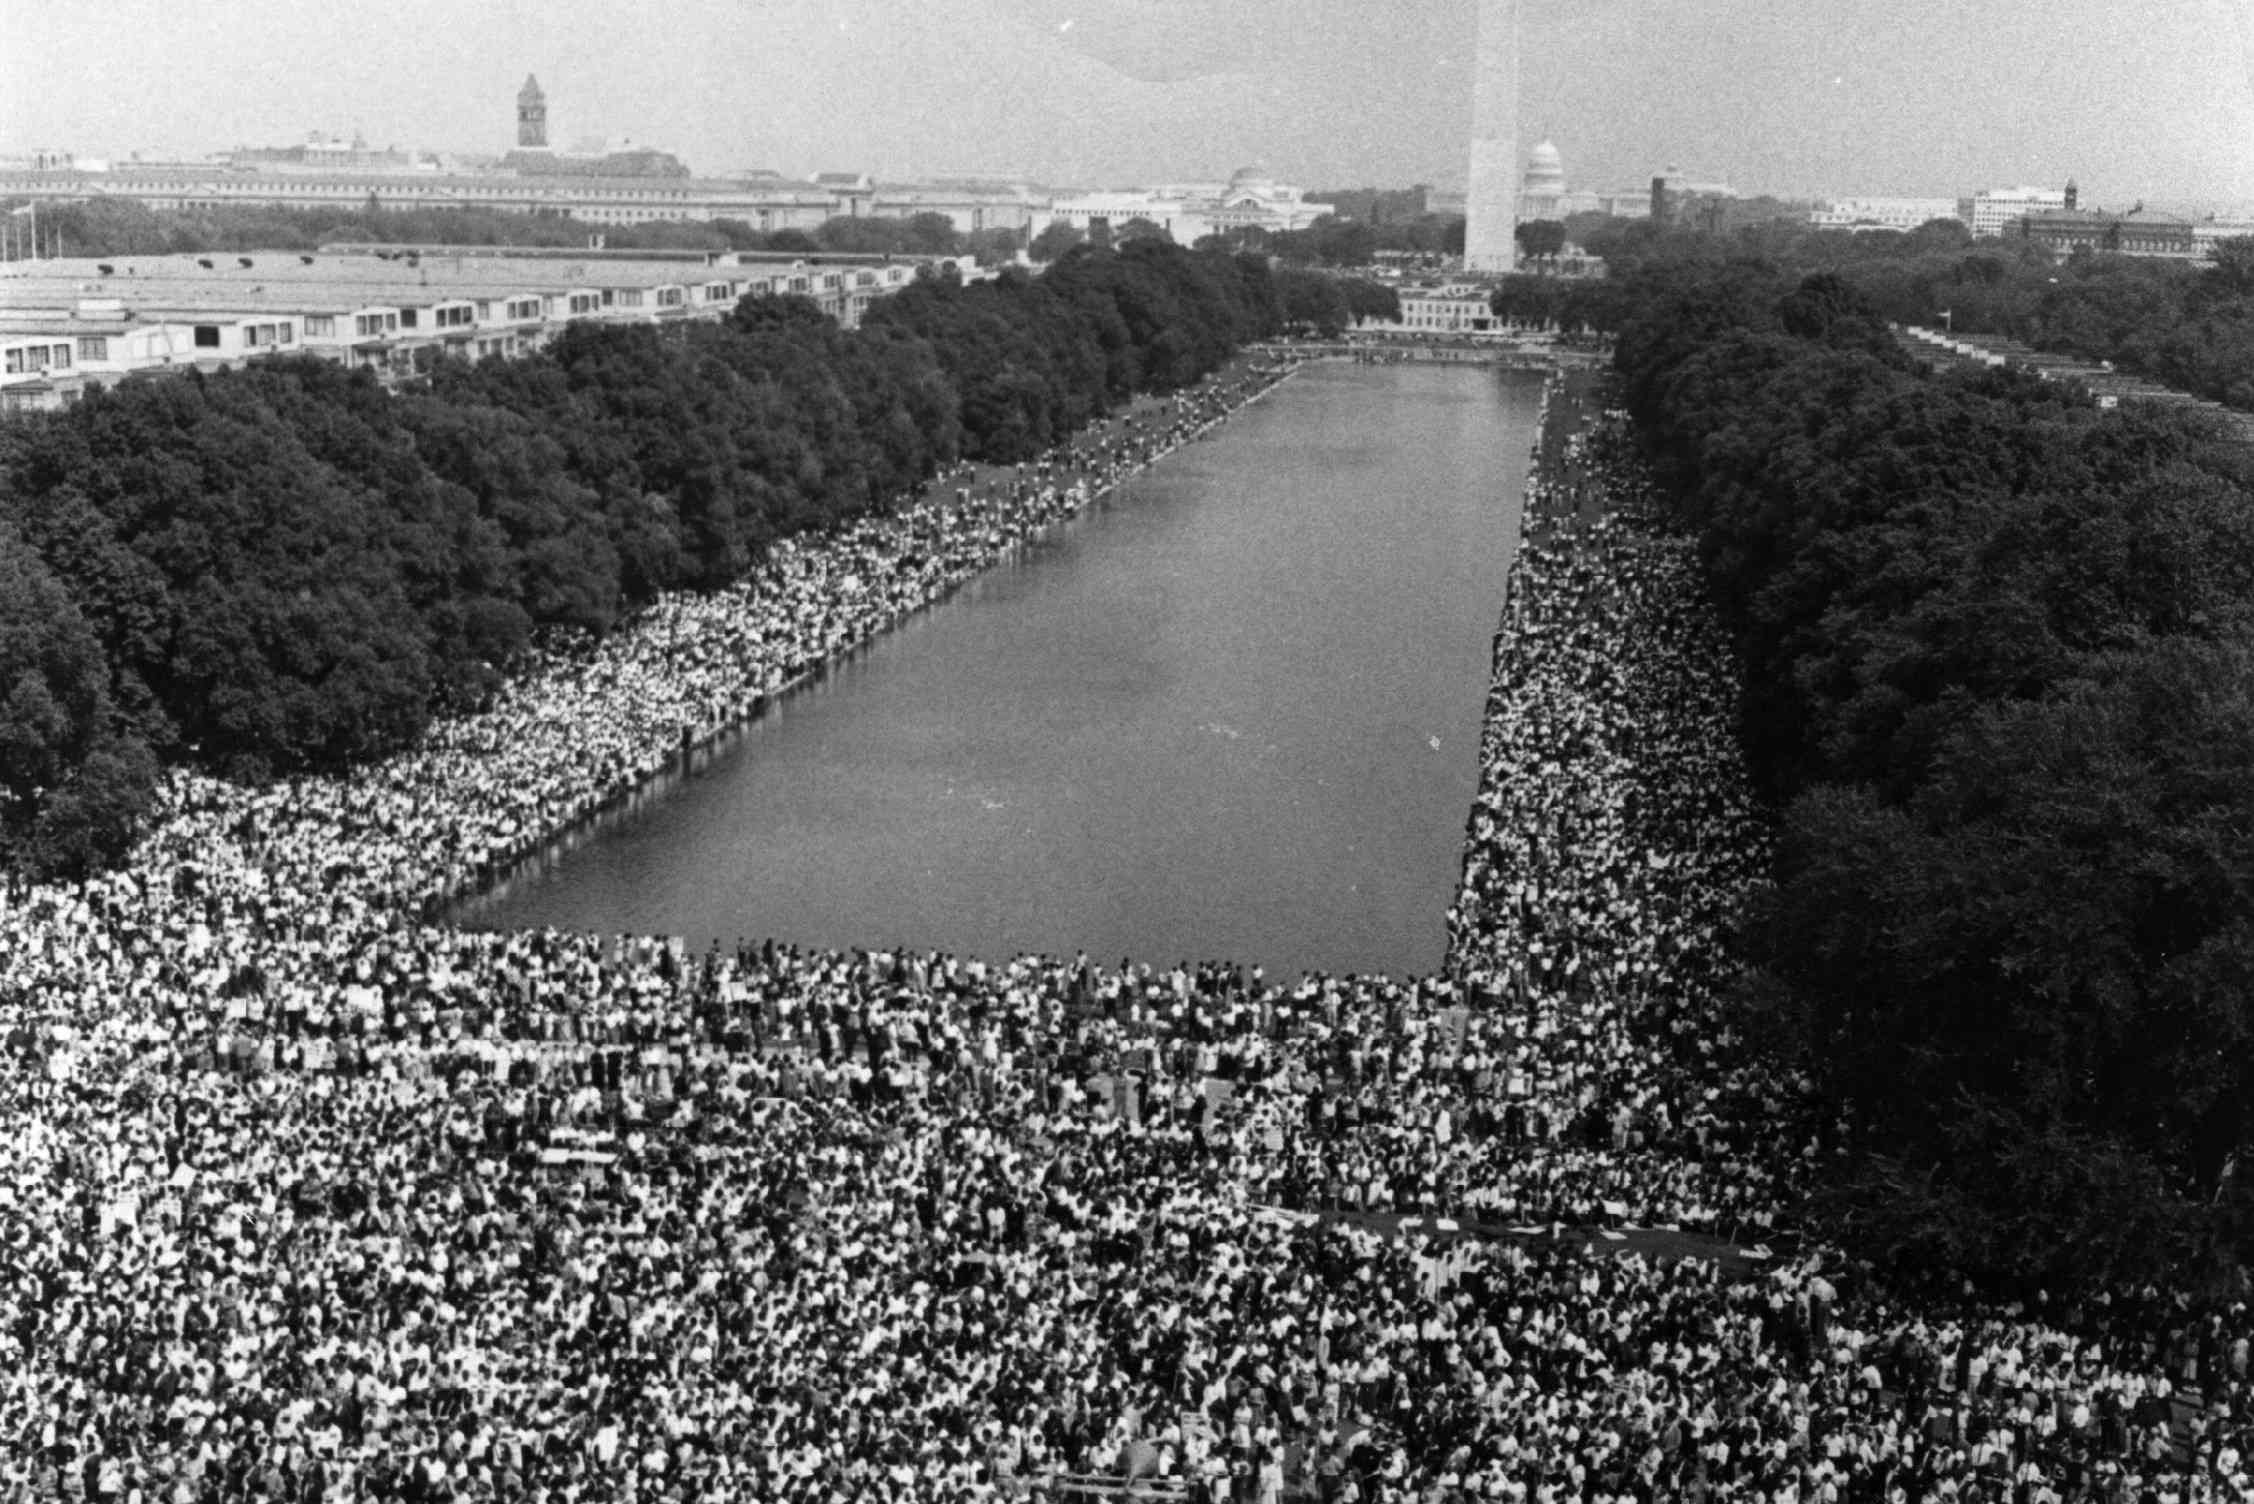 Thousands of people crowded in front of the Washington Monument Reflecting Pool during the March on Washington for Jobs and Freedom